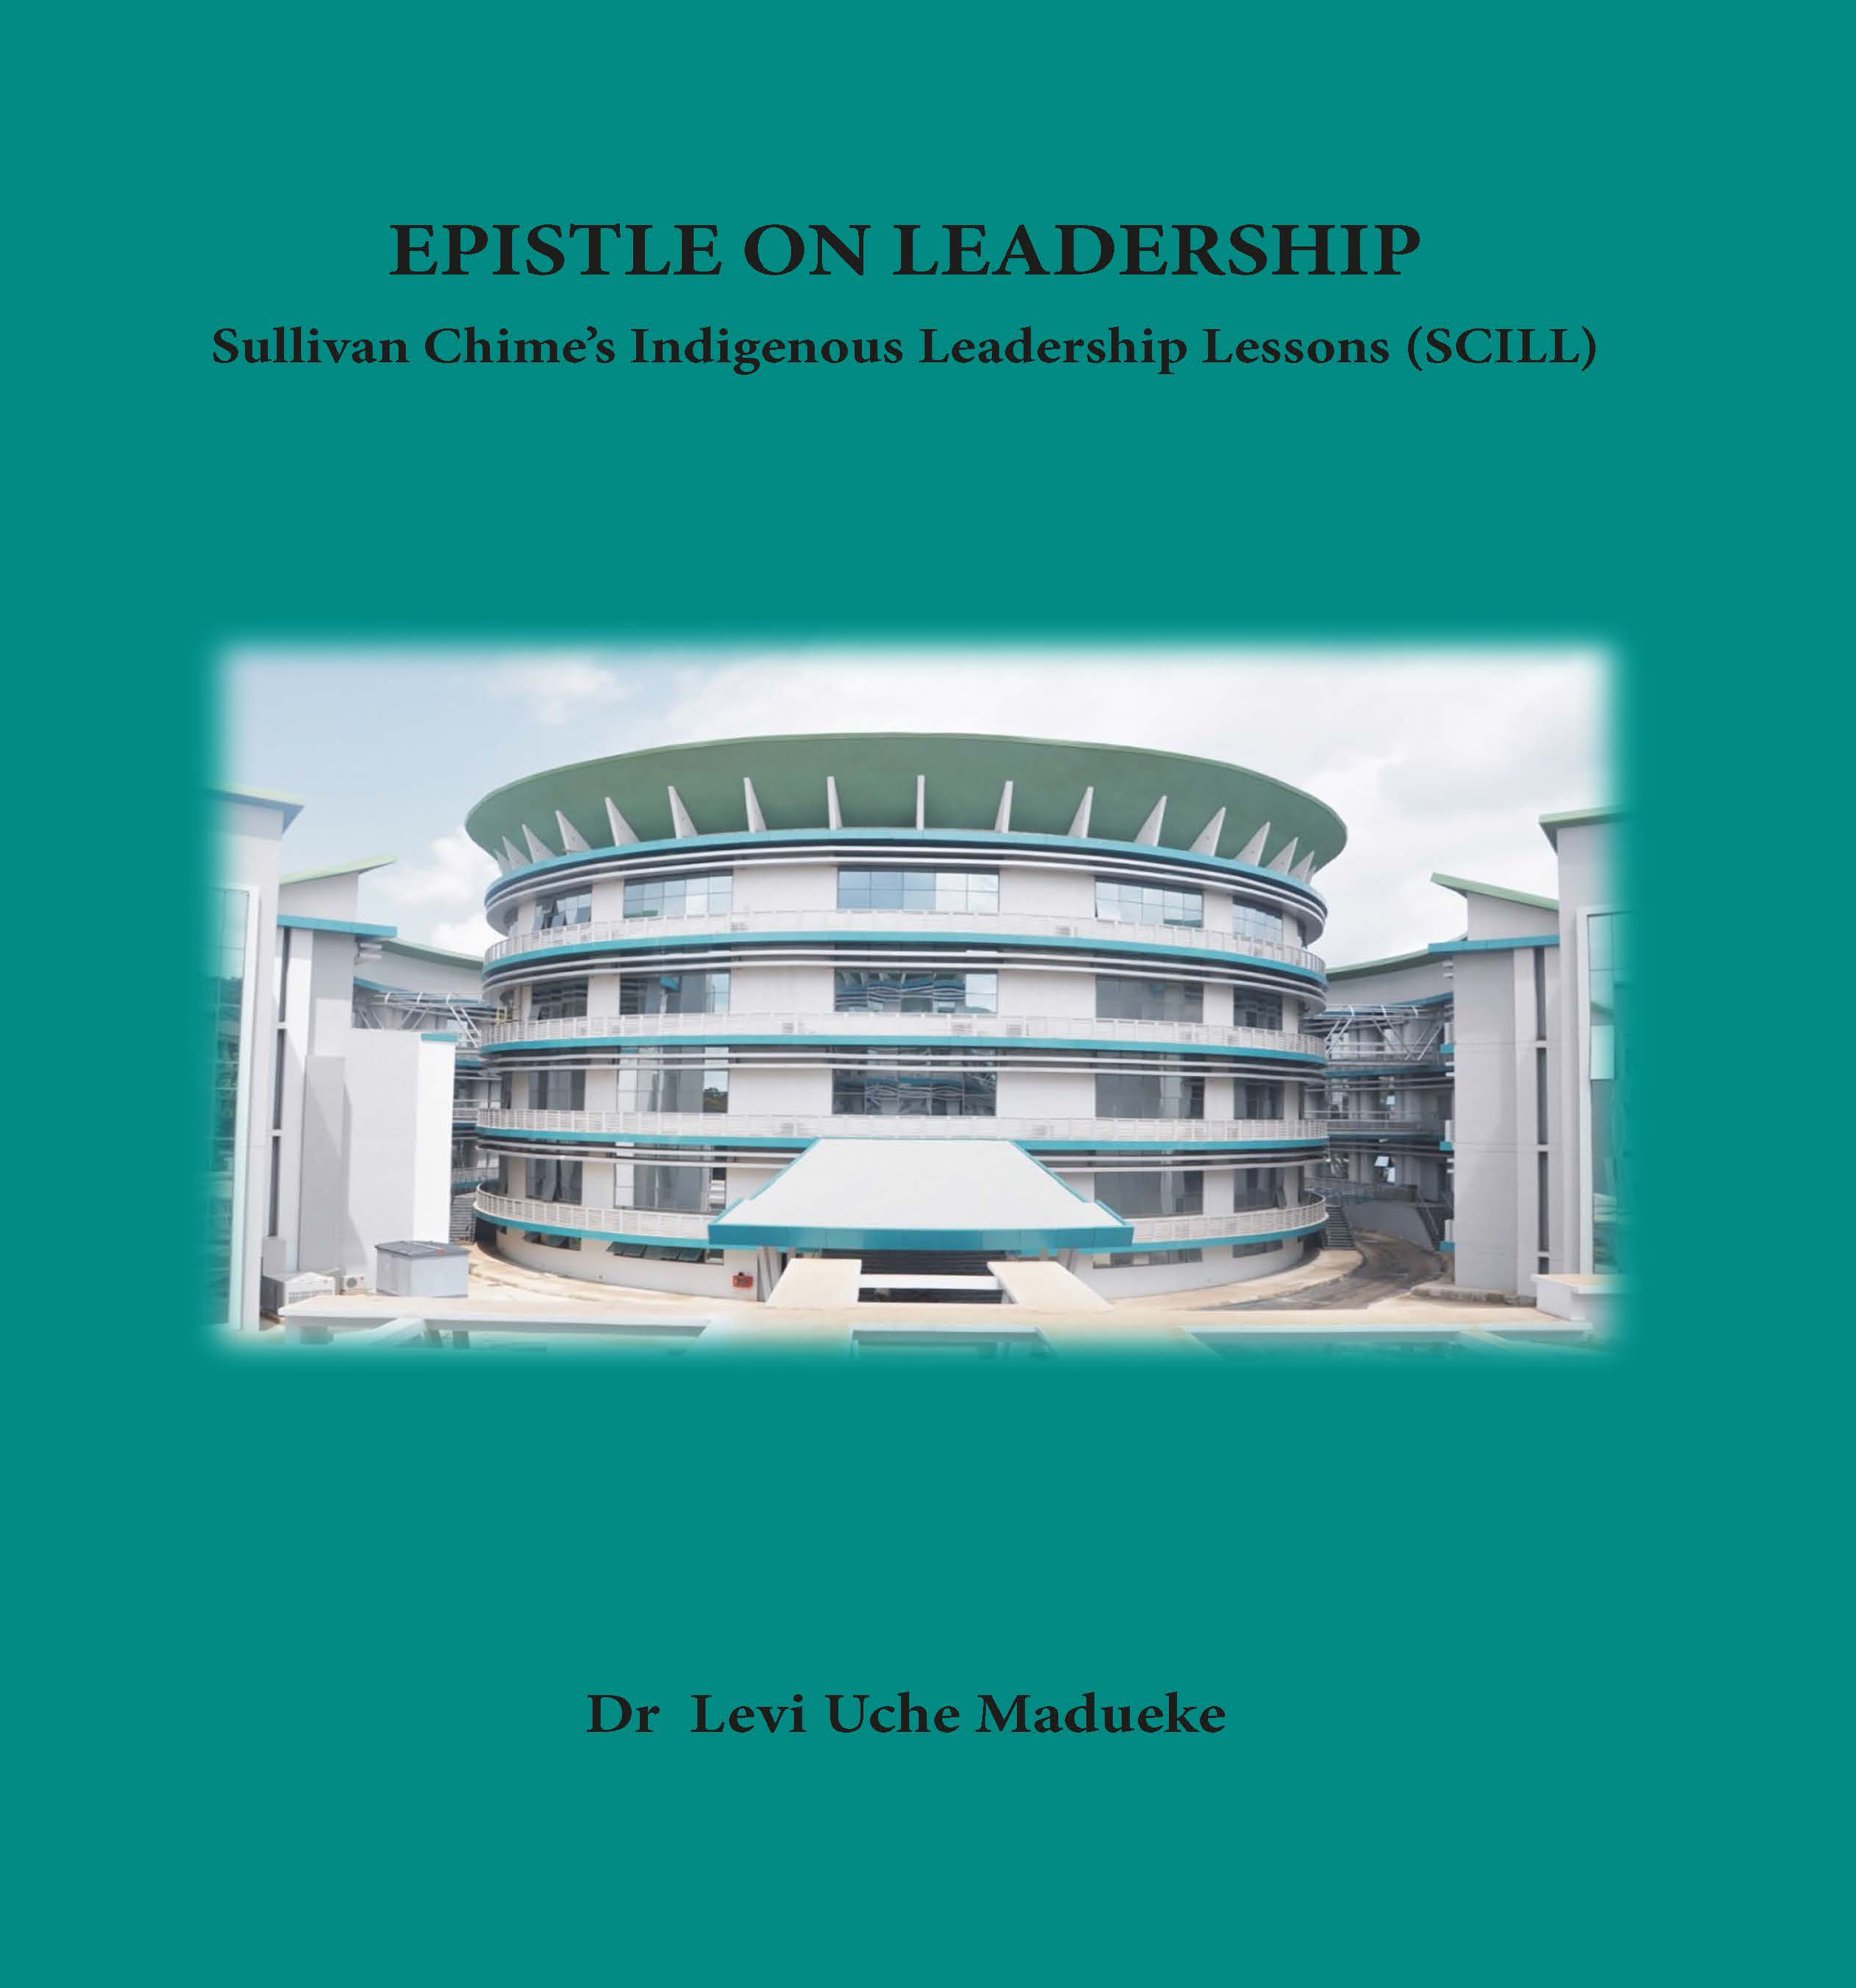 Epistle on Leadership – Sullivan Chime's Indigenous Leadership Lessons